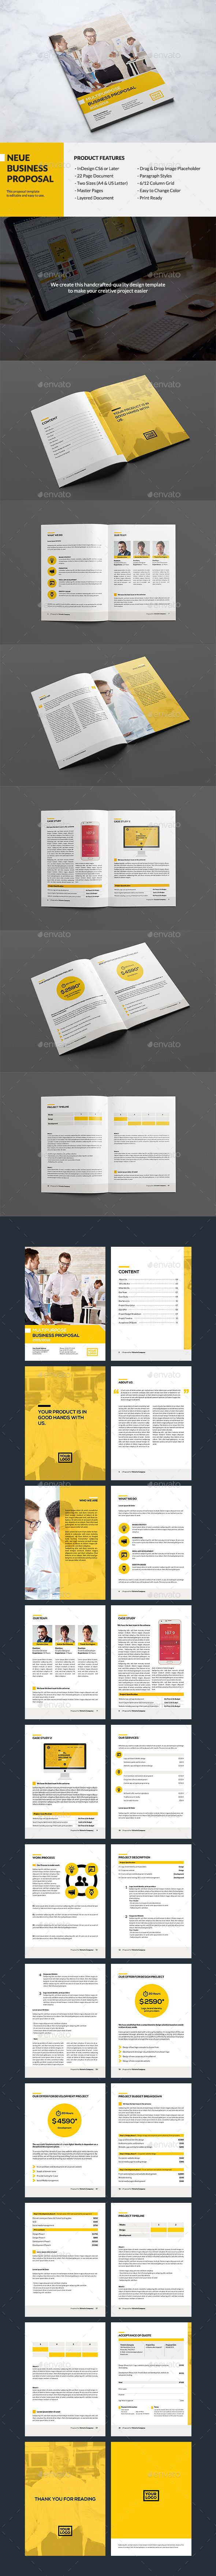 Neue - Website Proposal Template #design Download: http://graphicriver.net/item/neue-website-proposal/12984465?ref=ksioks